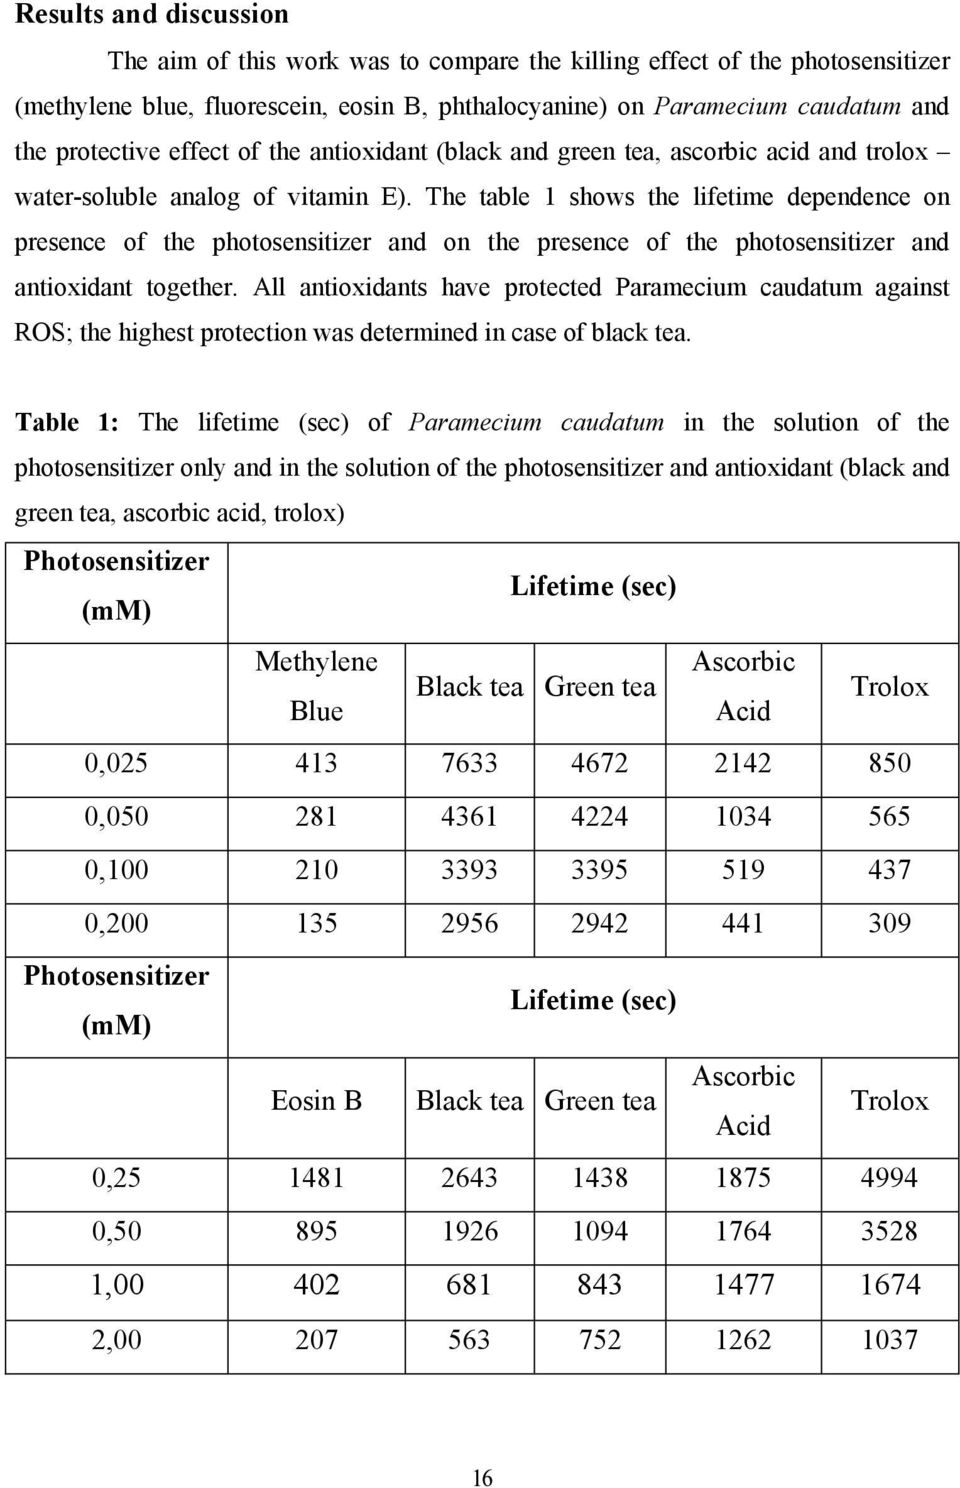 The table 1 shows the lifetime dependence on presence of the photosensitizer and on the presence of the photosensitizer and antioxidant together.